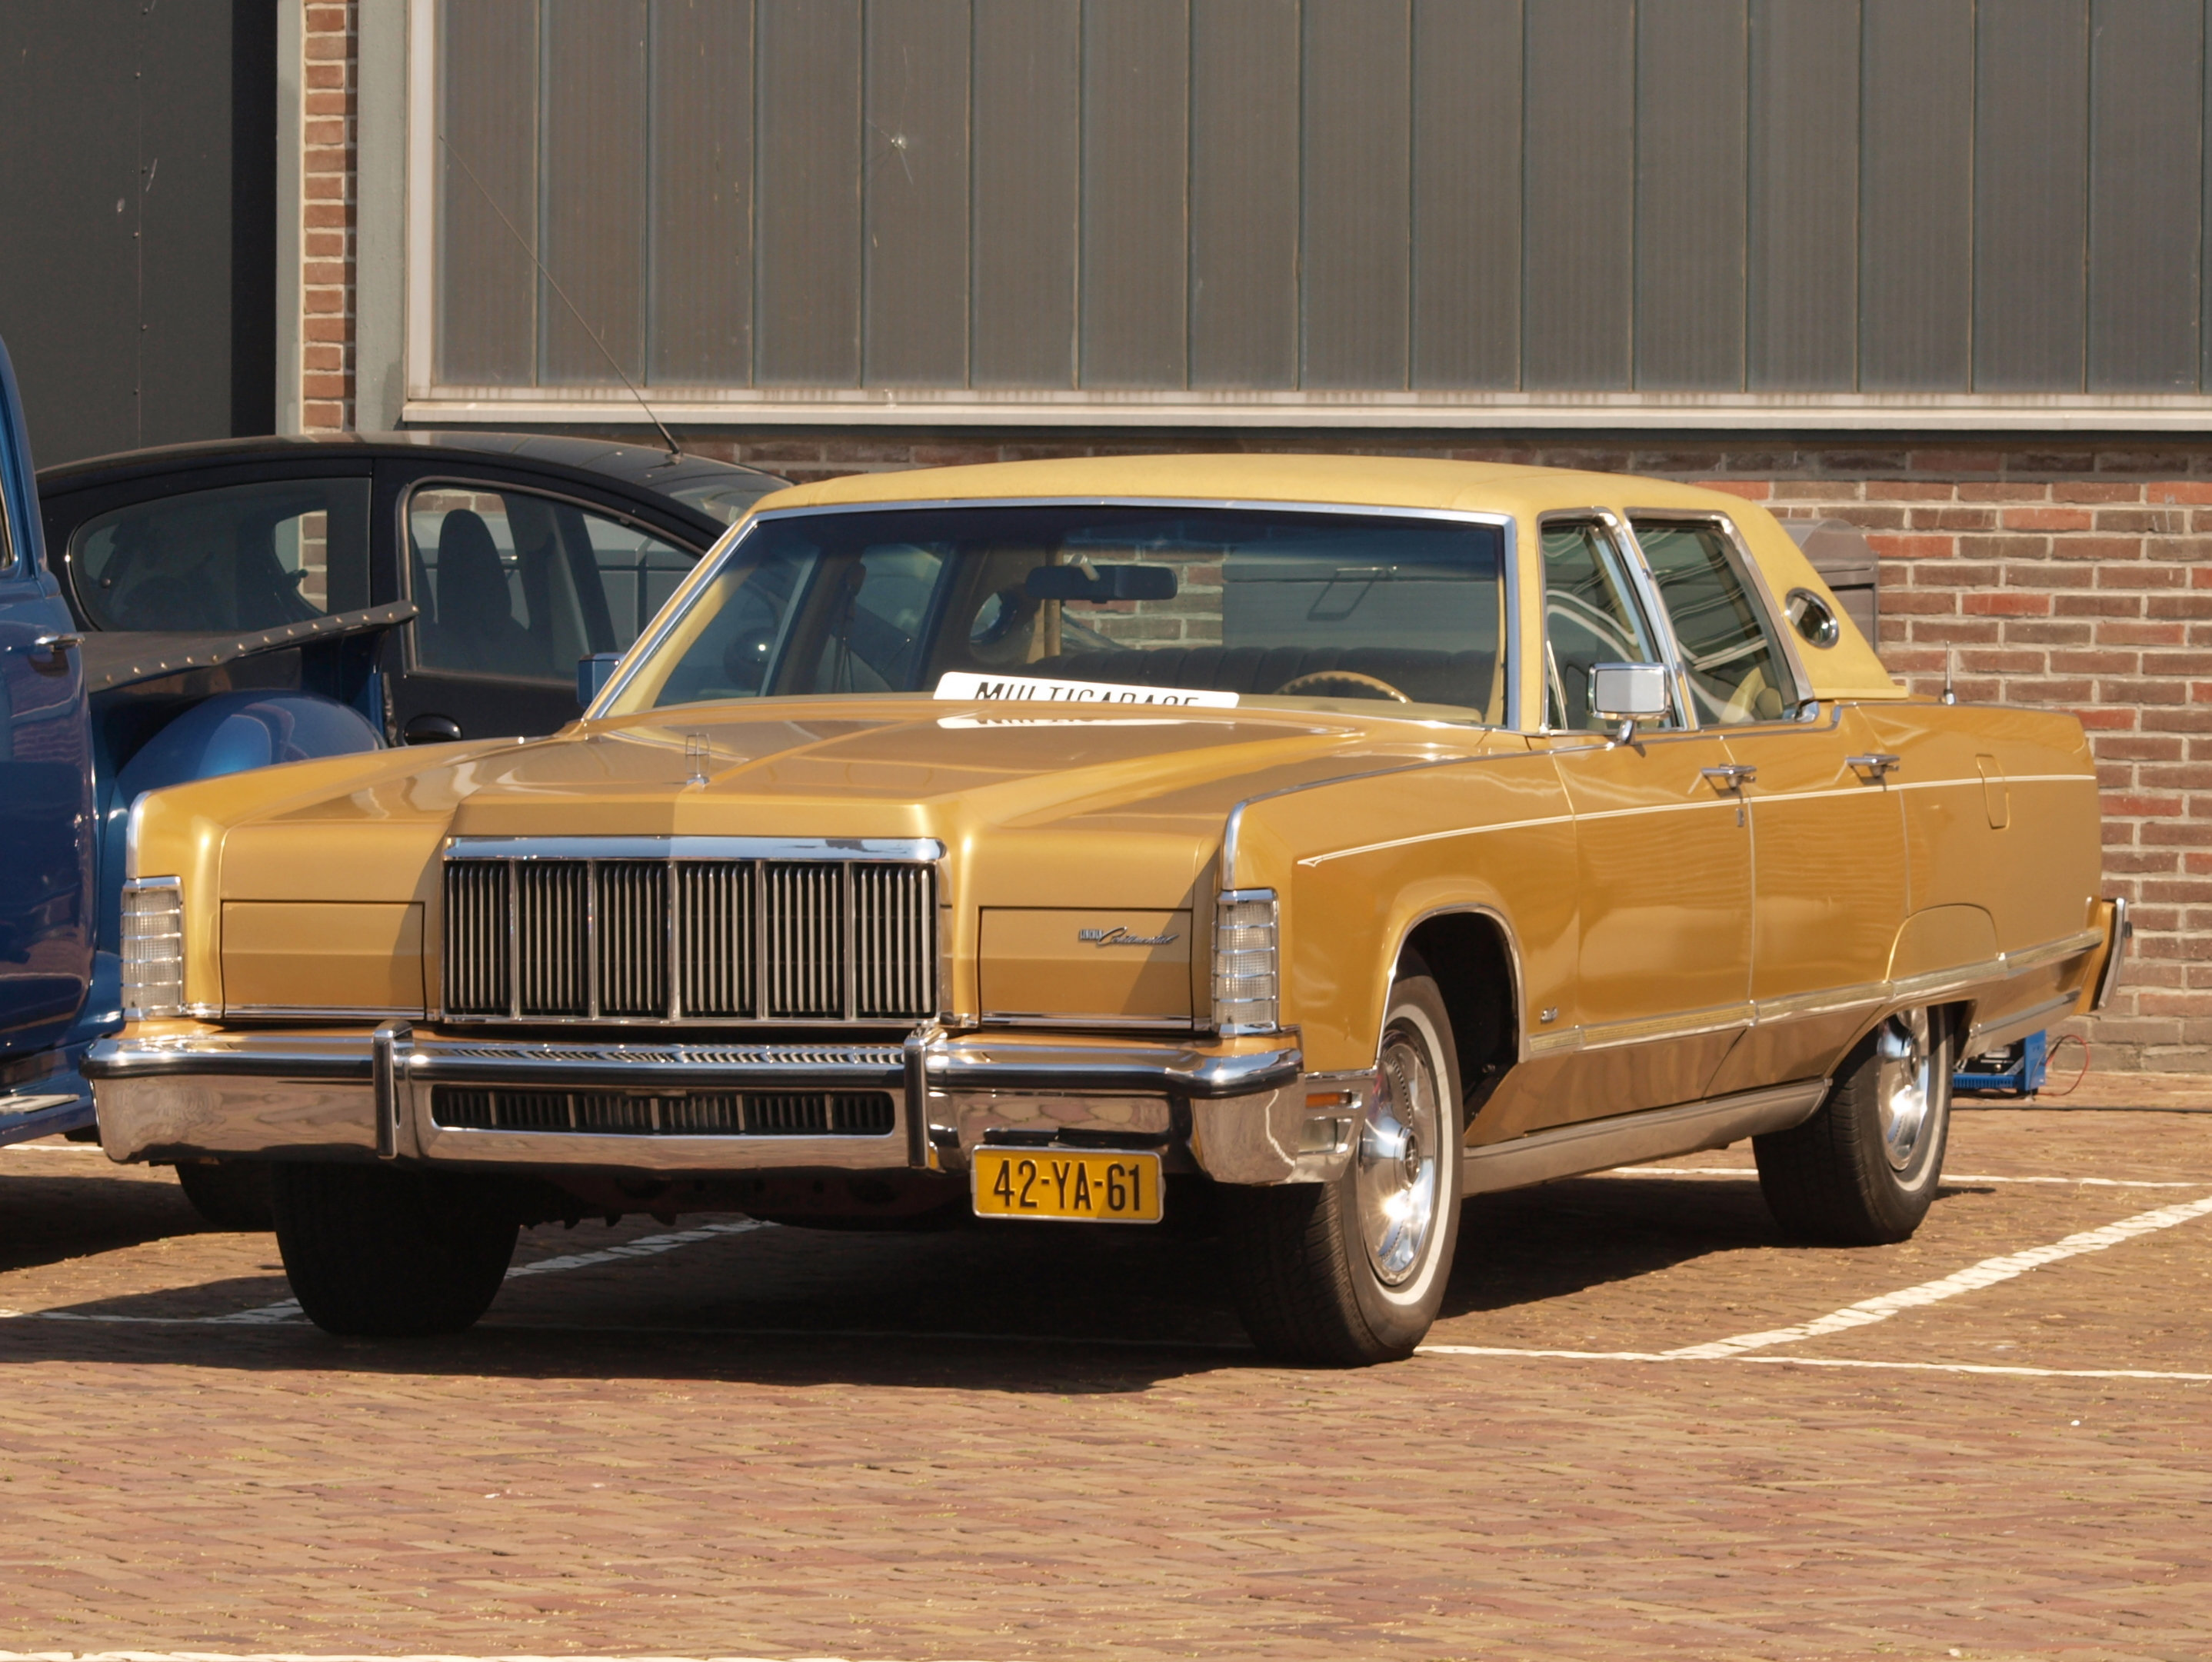 File:Lincoln Continental (1972), Dutch licence registration 42-YA-61 pic2.JPG - Wikimedia Commons